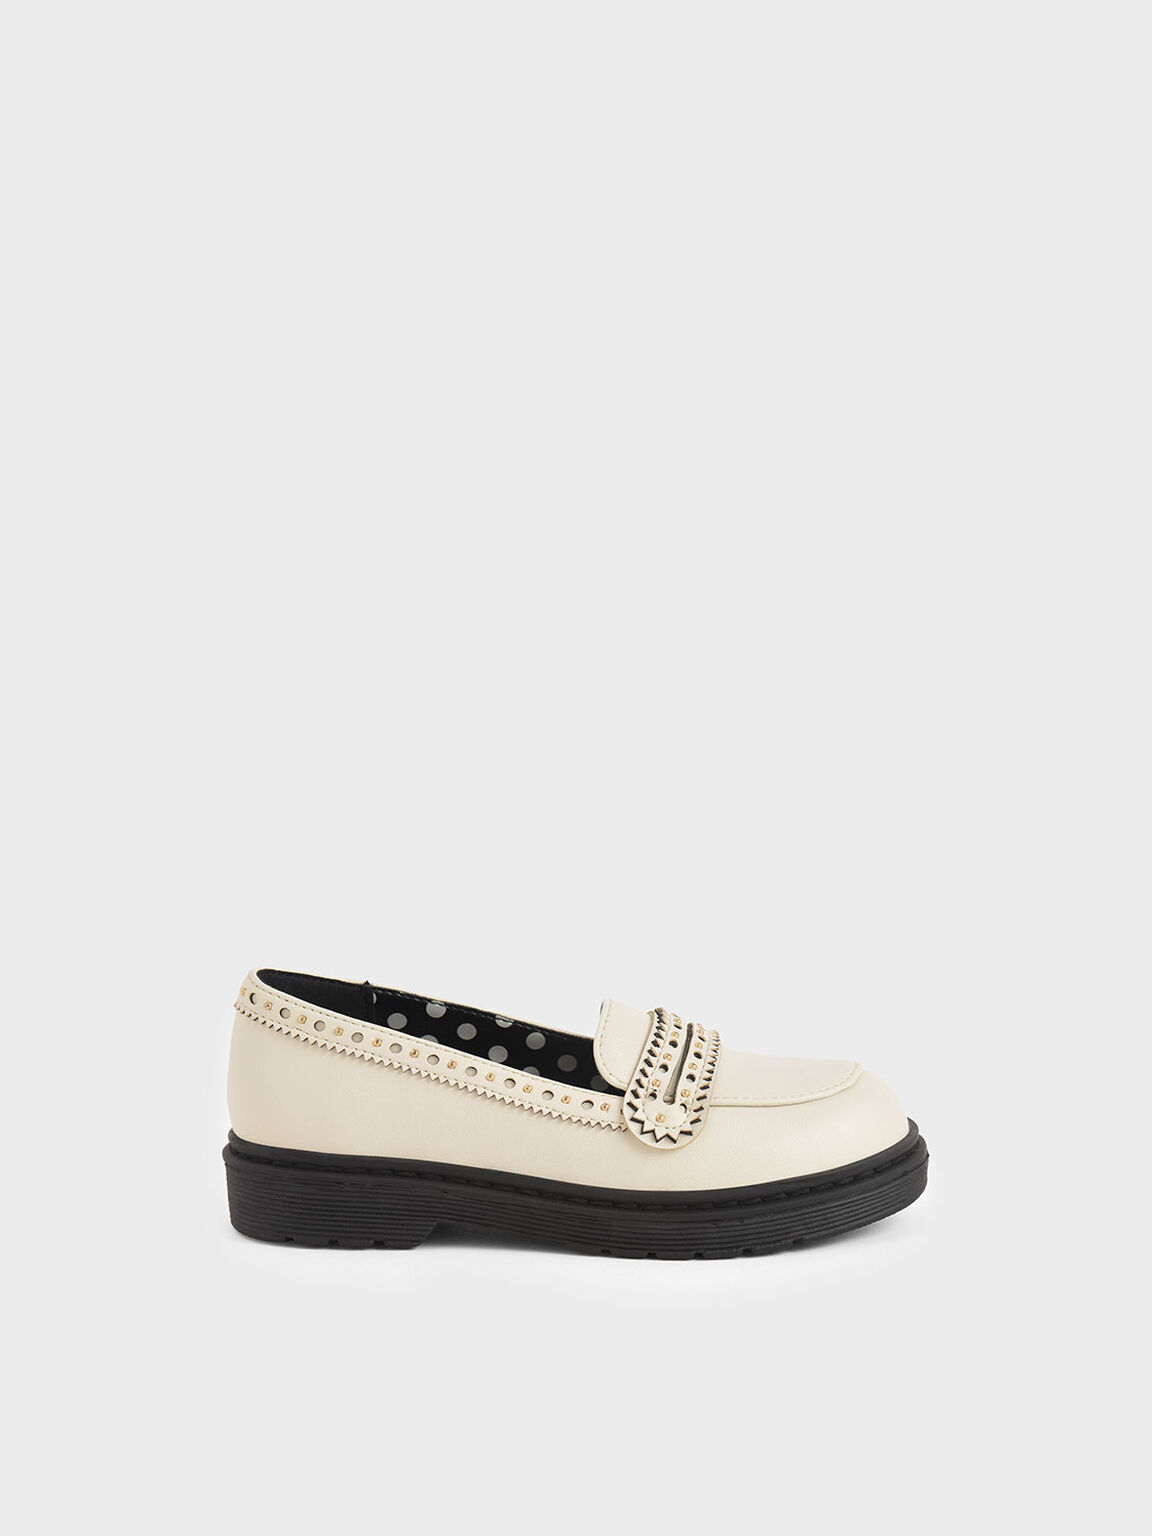 Girls' Studded Penny Loafers, Chalk, hi-res